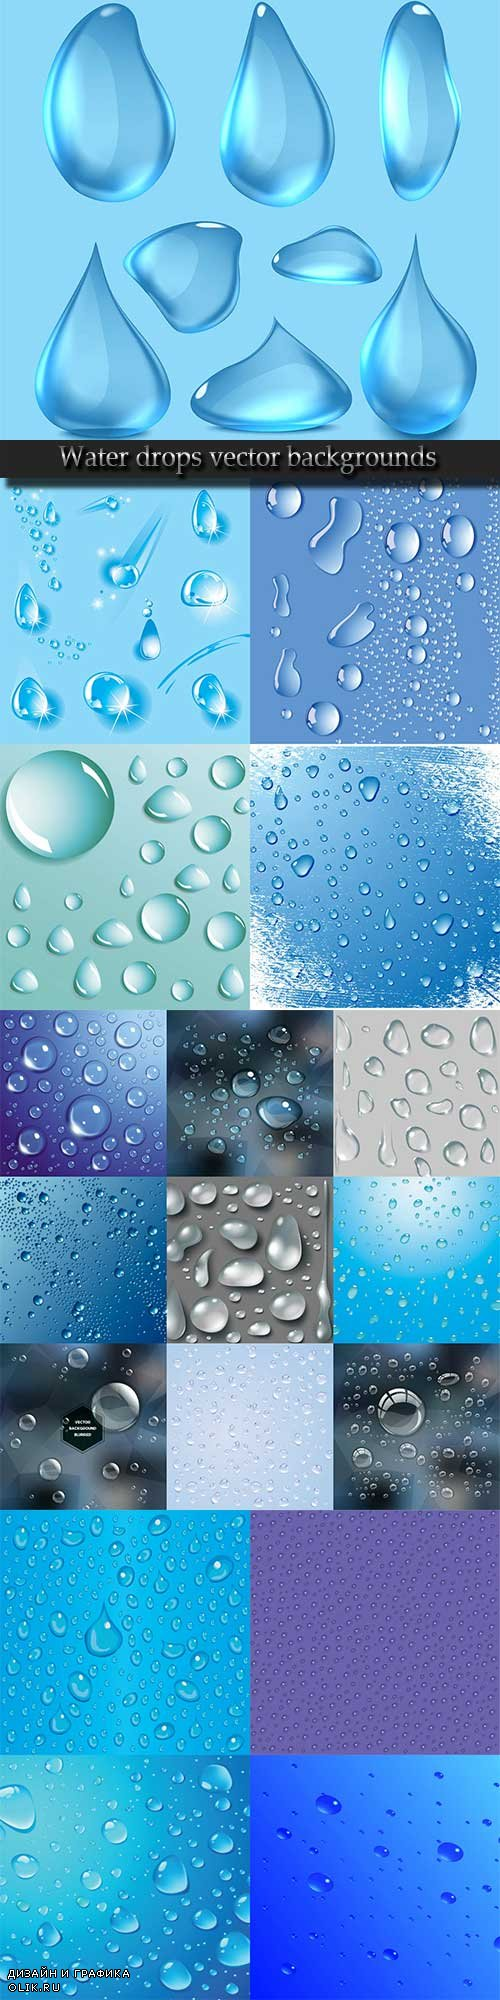 Water drops vector backgrounds